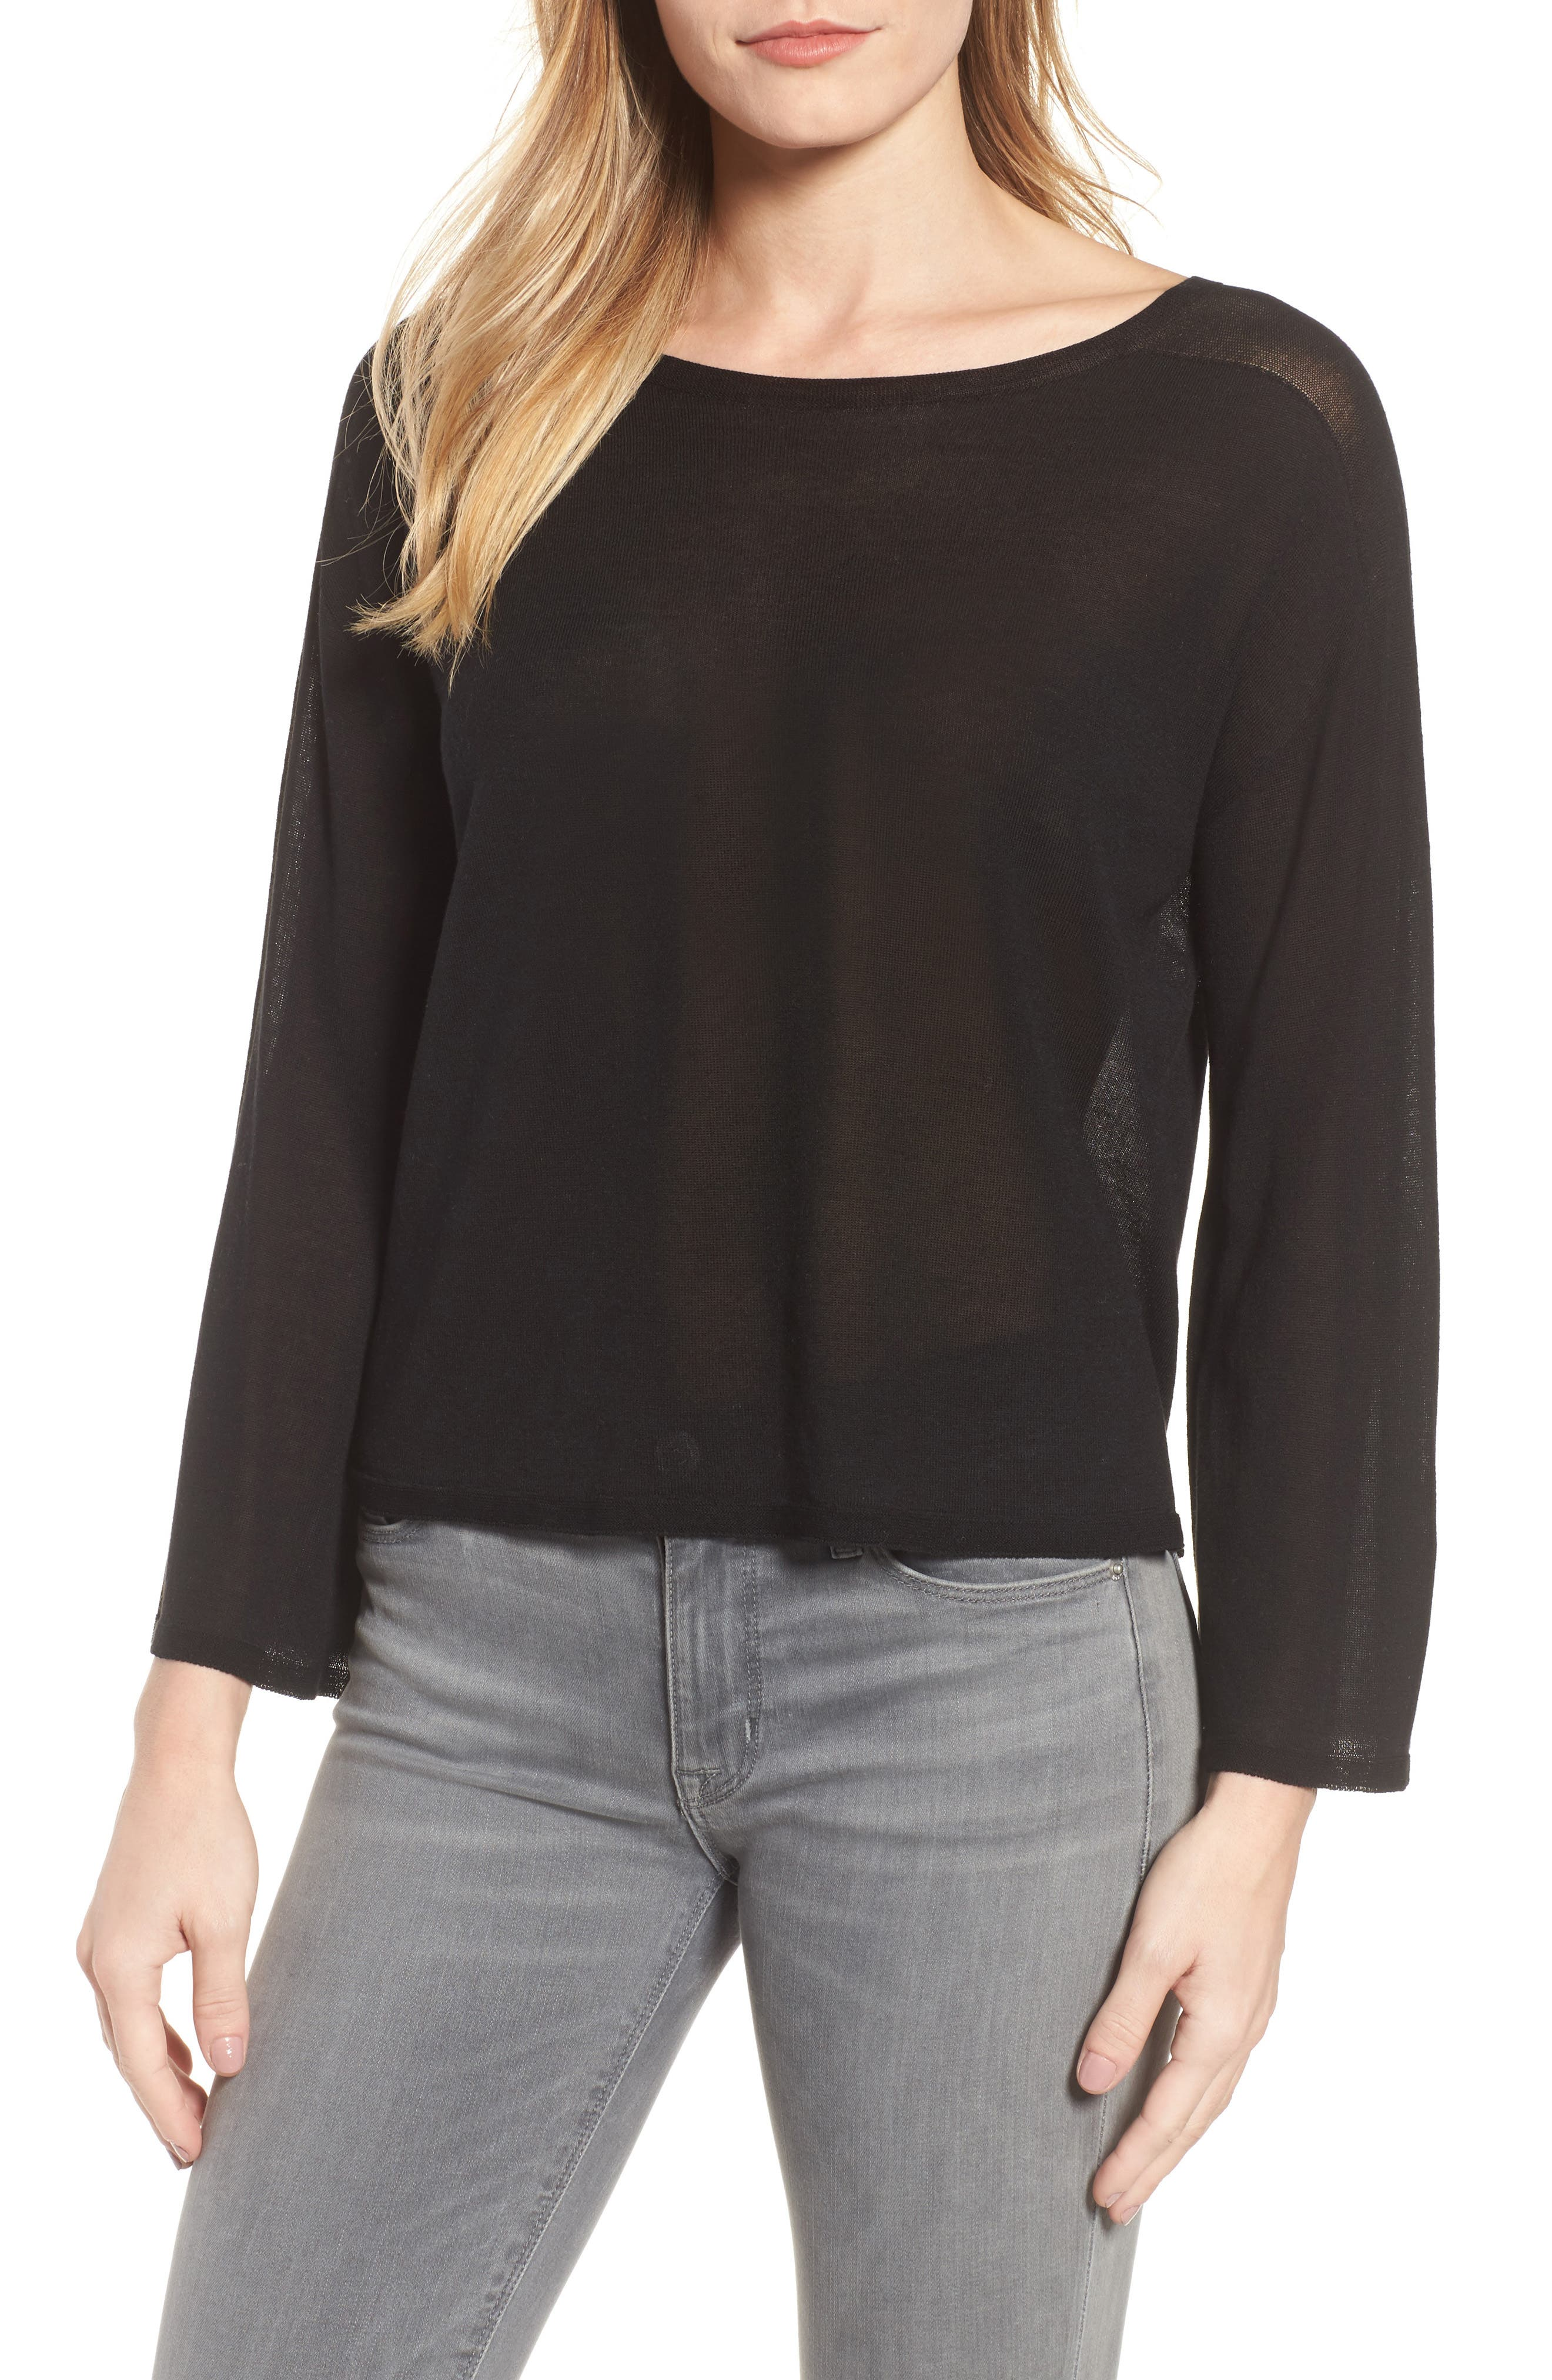 Tencel<sup>®</sup> Lyocell Knit Sweater,                         Main,                         color, Black